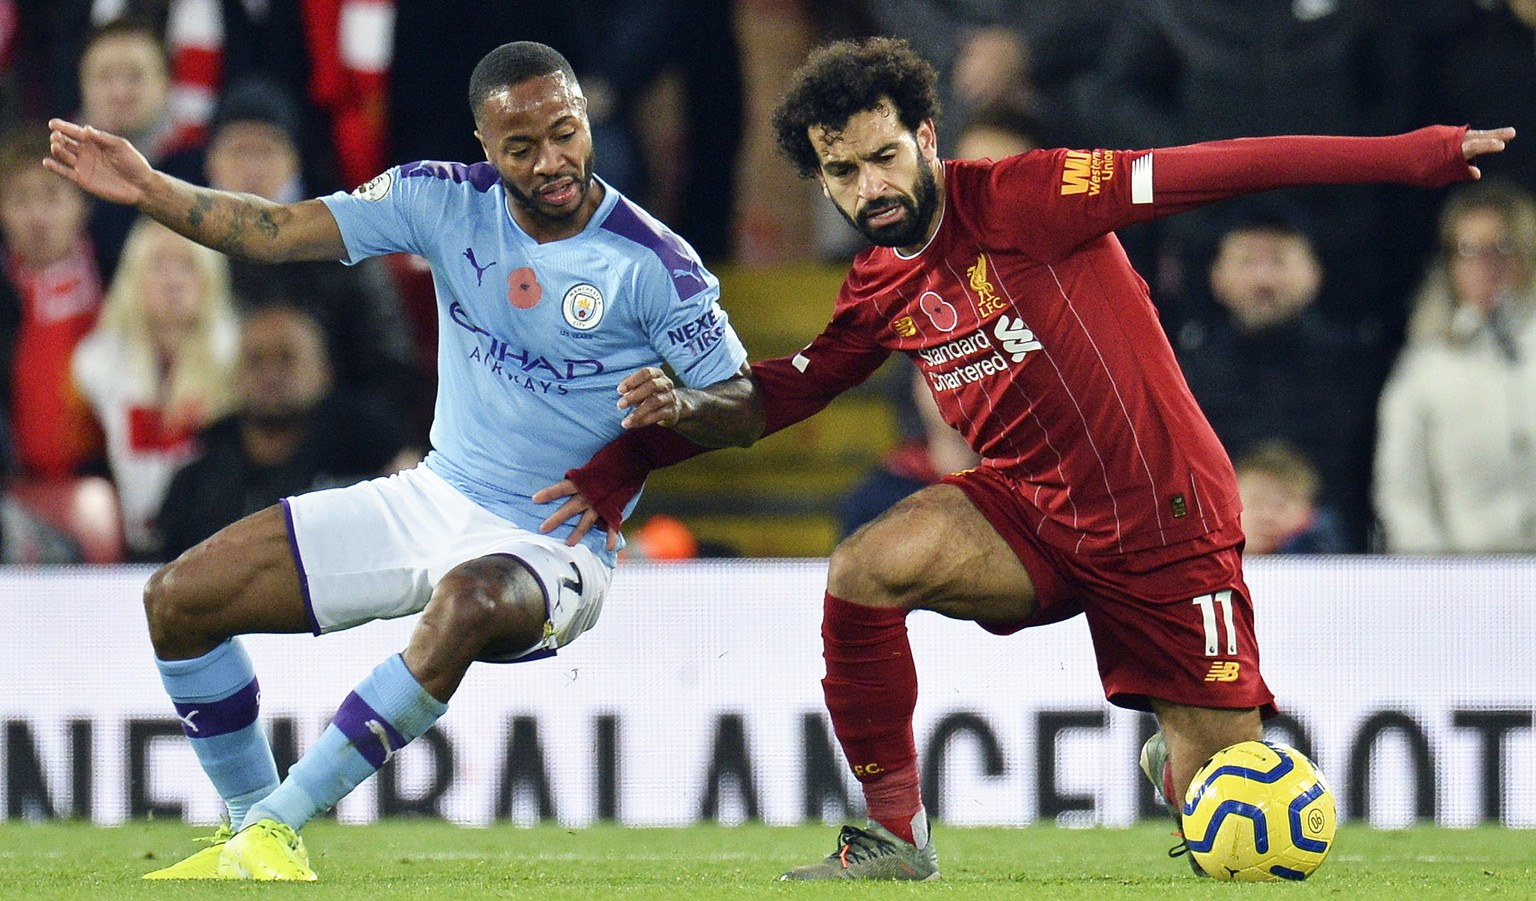 epa07986506 Mohamed Salah (R) of Liverpool in action against Raheem Sterling (L) of Manchester City during the English Premier League soccer match between Liverpool FC and Manchester City in Liverpool, Britain, 10 November 2019.  EPA/PETER POWELL EDITORIAL USE ONLY. No use with unauthorized audio, video, data, fixture lists, club/league logos or 'live' services. Online in-match use limited to 120 images, no video emulation. No use in betting, games or single club/league/player publications